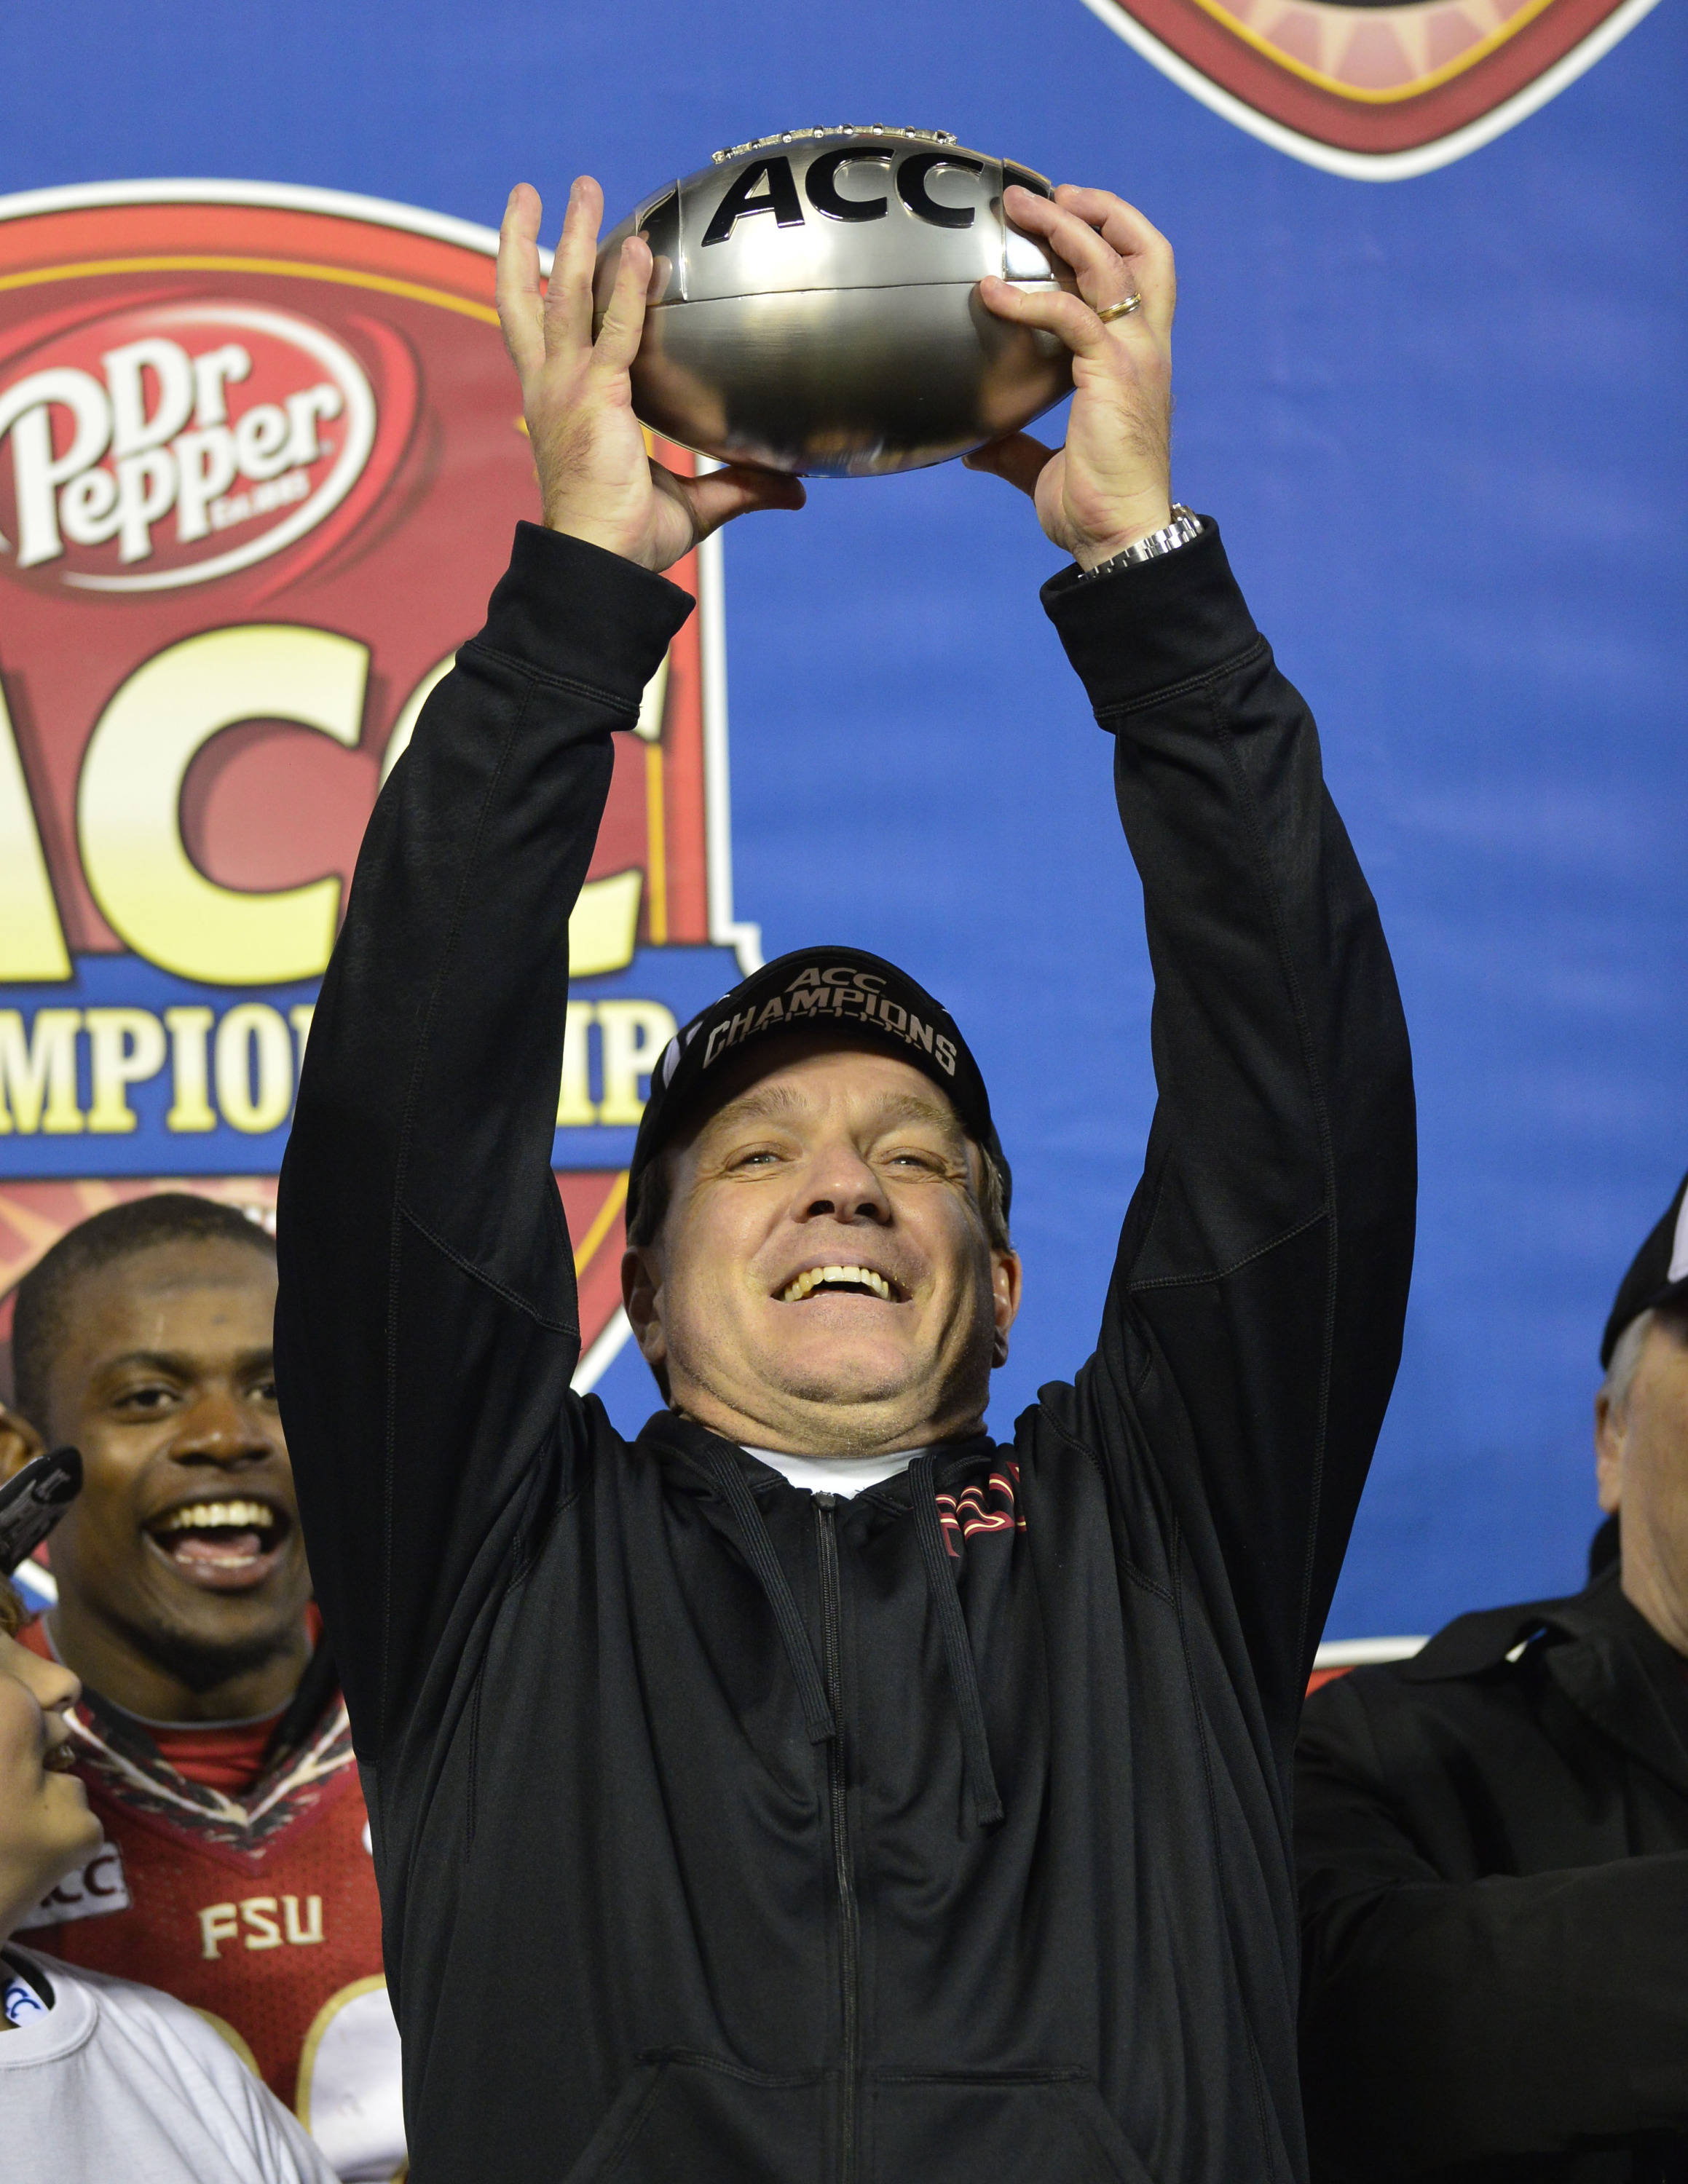 Dec 7, 2013; Charlotte, NC, USA; Florida State Seminoles head coach Jimbo Fisher holds up the ACC Championship trophy. The Seminoles defeated the Blue Devils 45-7 at Bank of America Stadium. Mandatory Credit: Bob Donnan-USA TODAY Sports